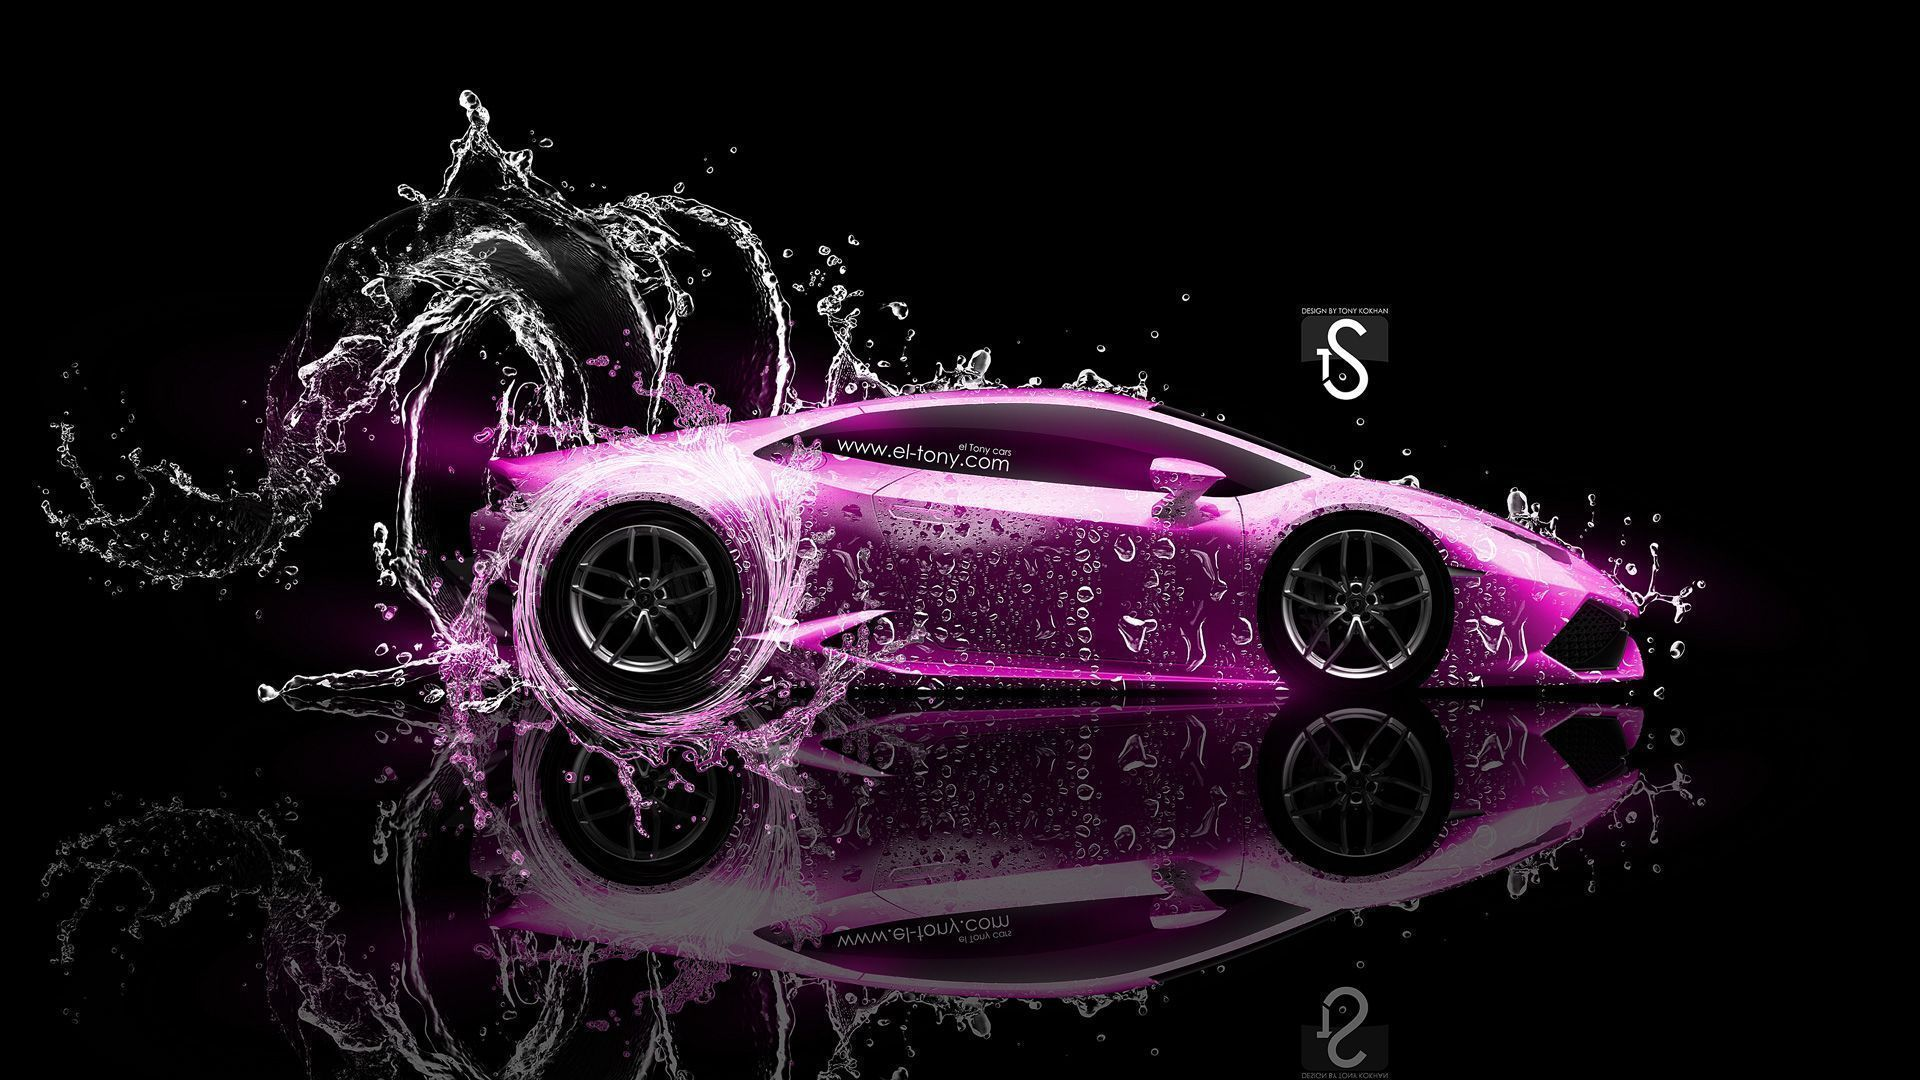 Superieur Lamborghini Huracan Super Water Car 2014 « El Tony